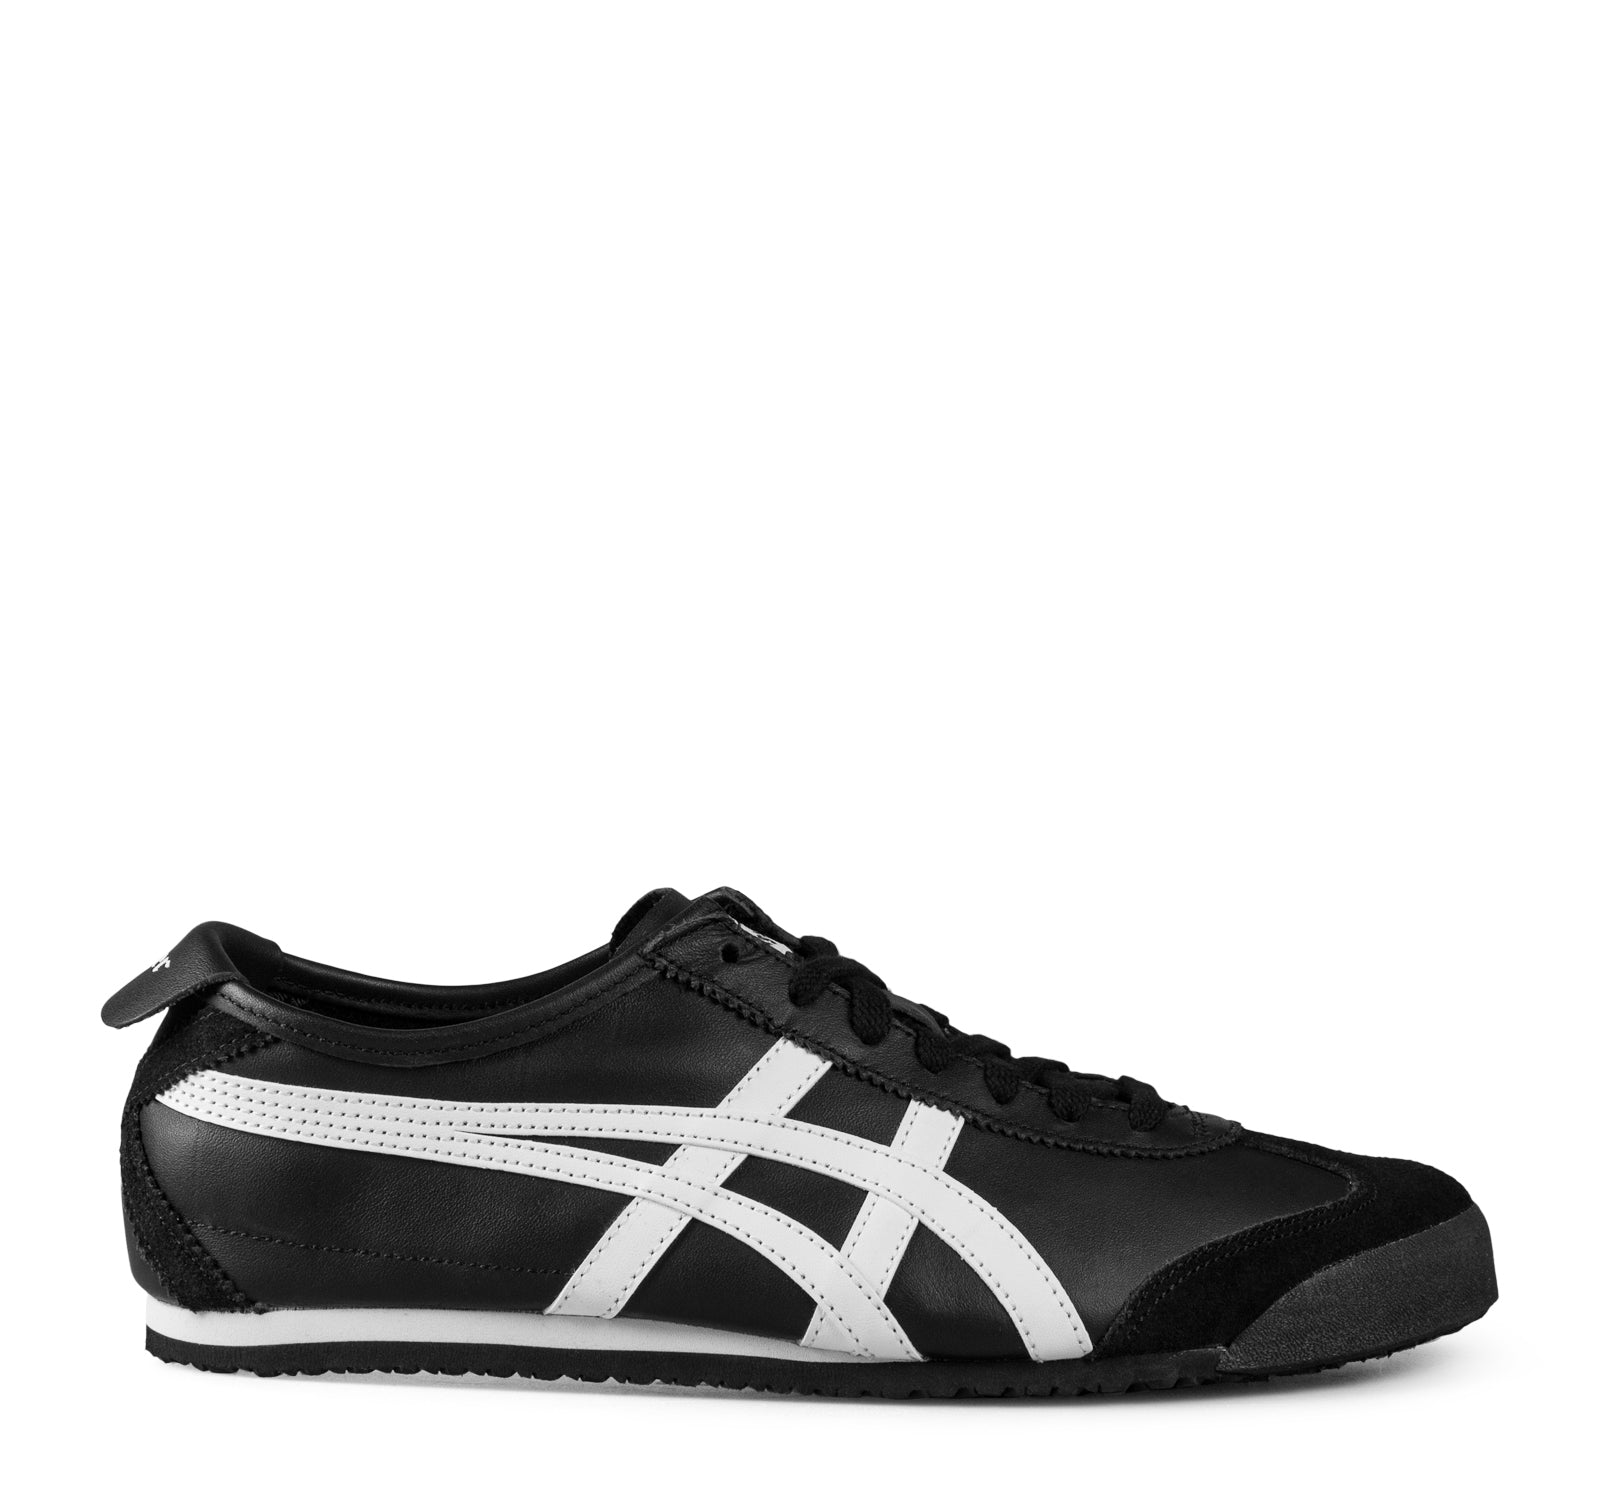 sports shoes 71609 c33bf Onitsuka Tiger Mexico 66 Sneaker in Black and White – On The ...